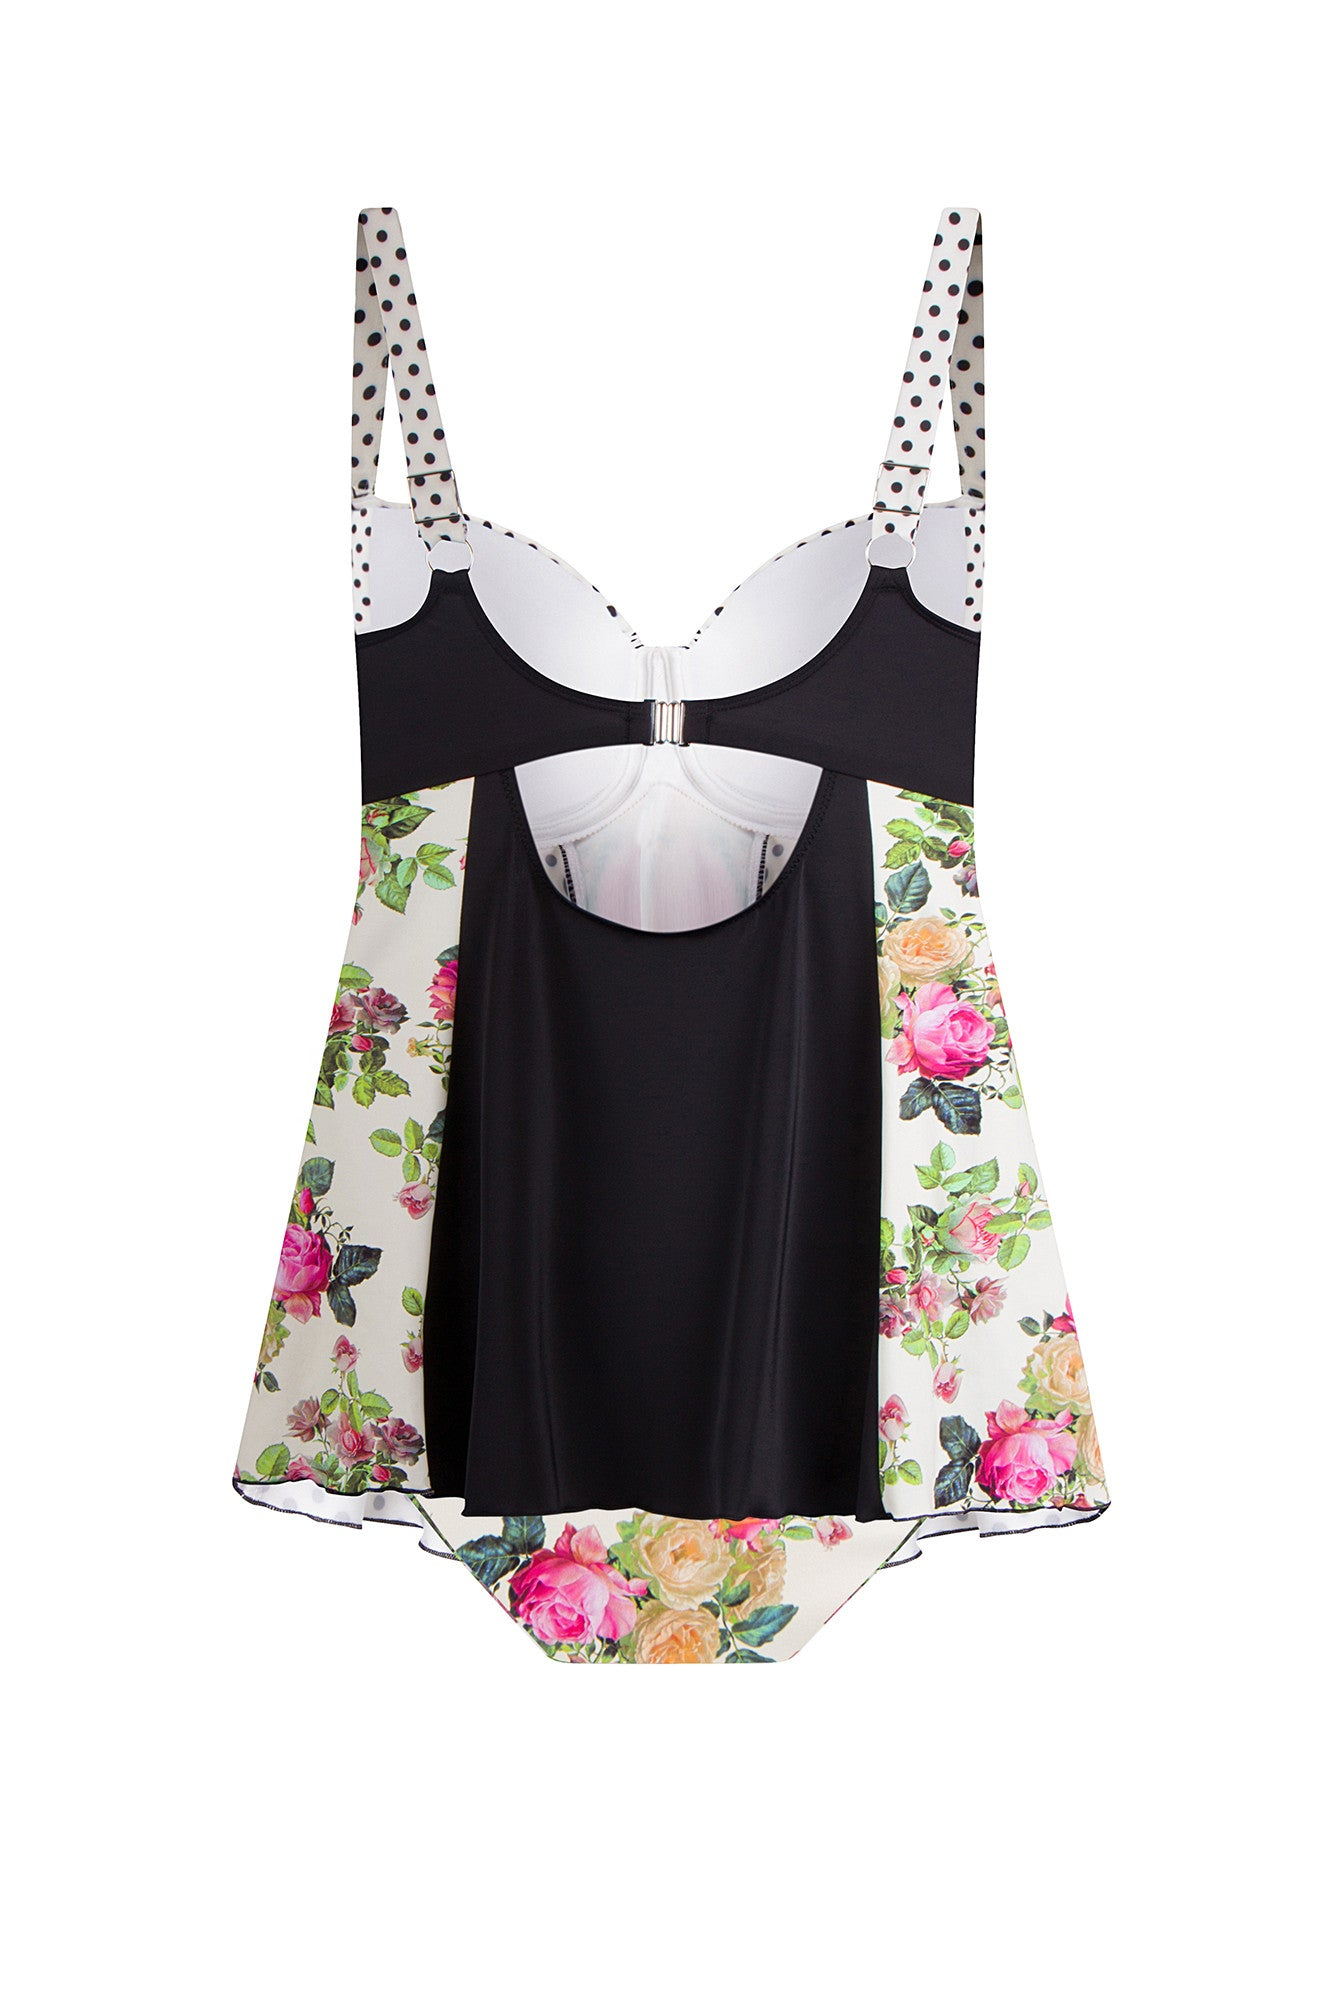 Floral Plus Size Tankini Top Swimdress Beautiful Flower design